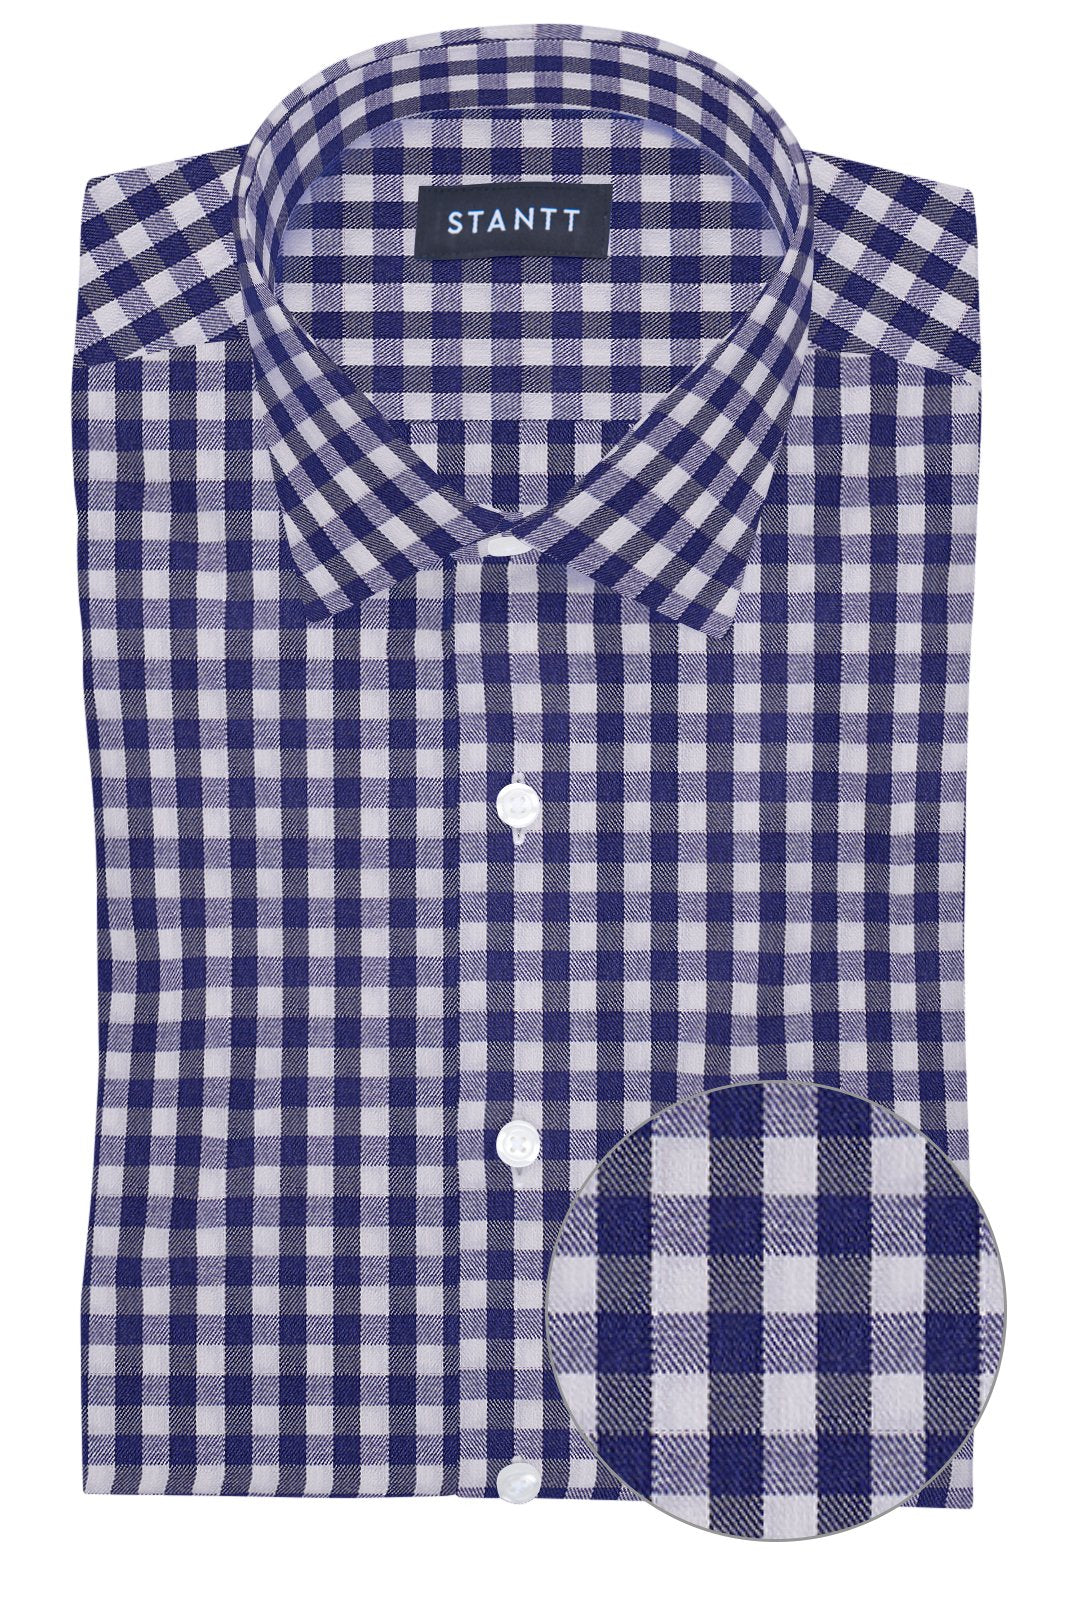 Performance Indigo Gingham: Modified-Spread Collar, Barrel Cuff